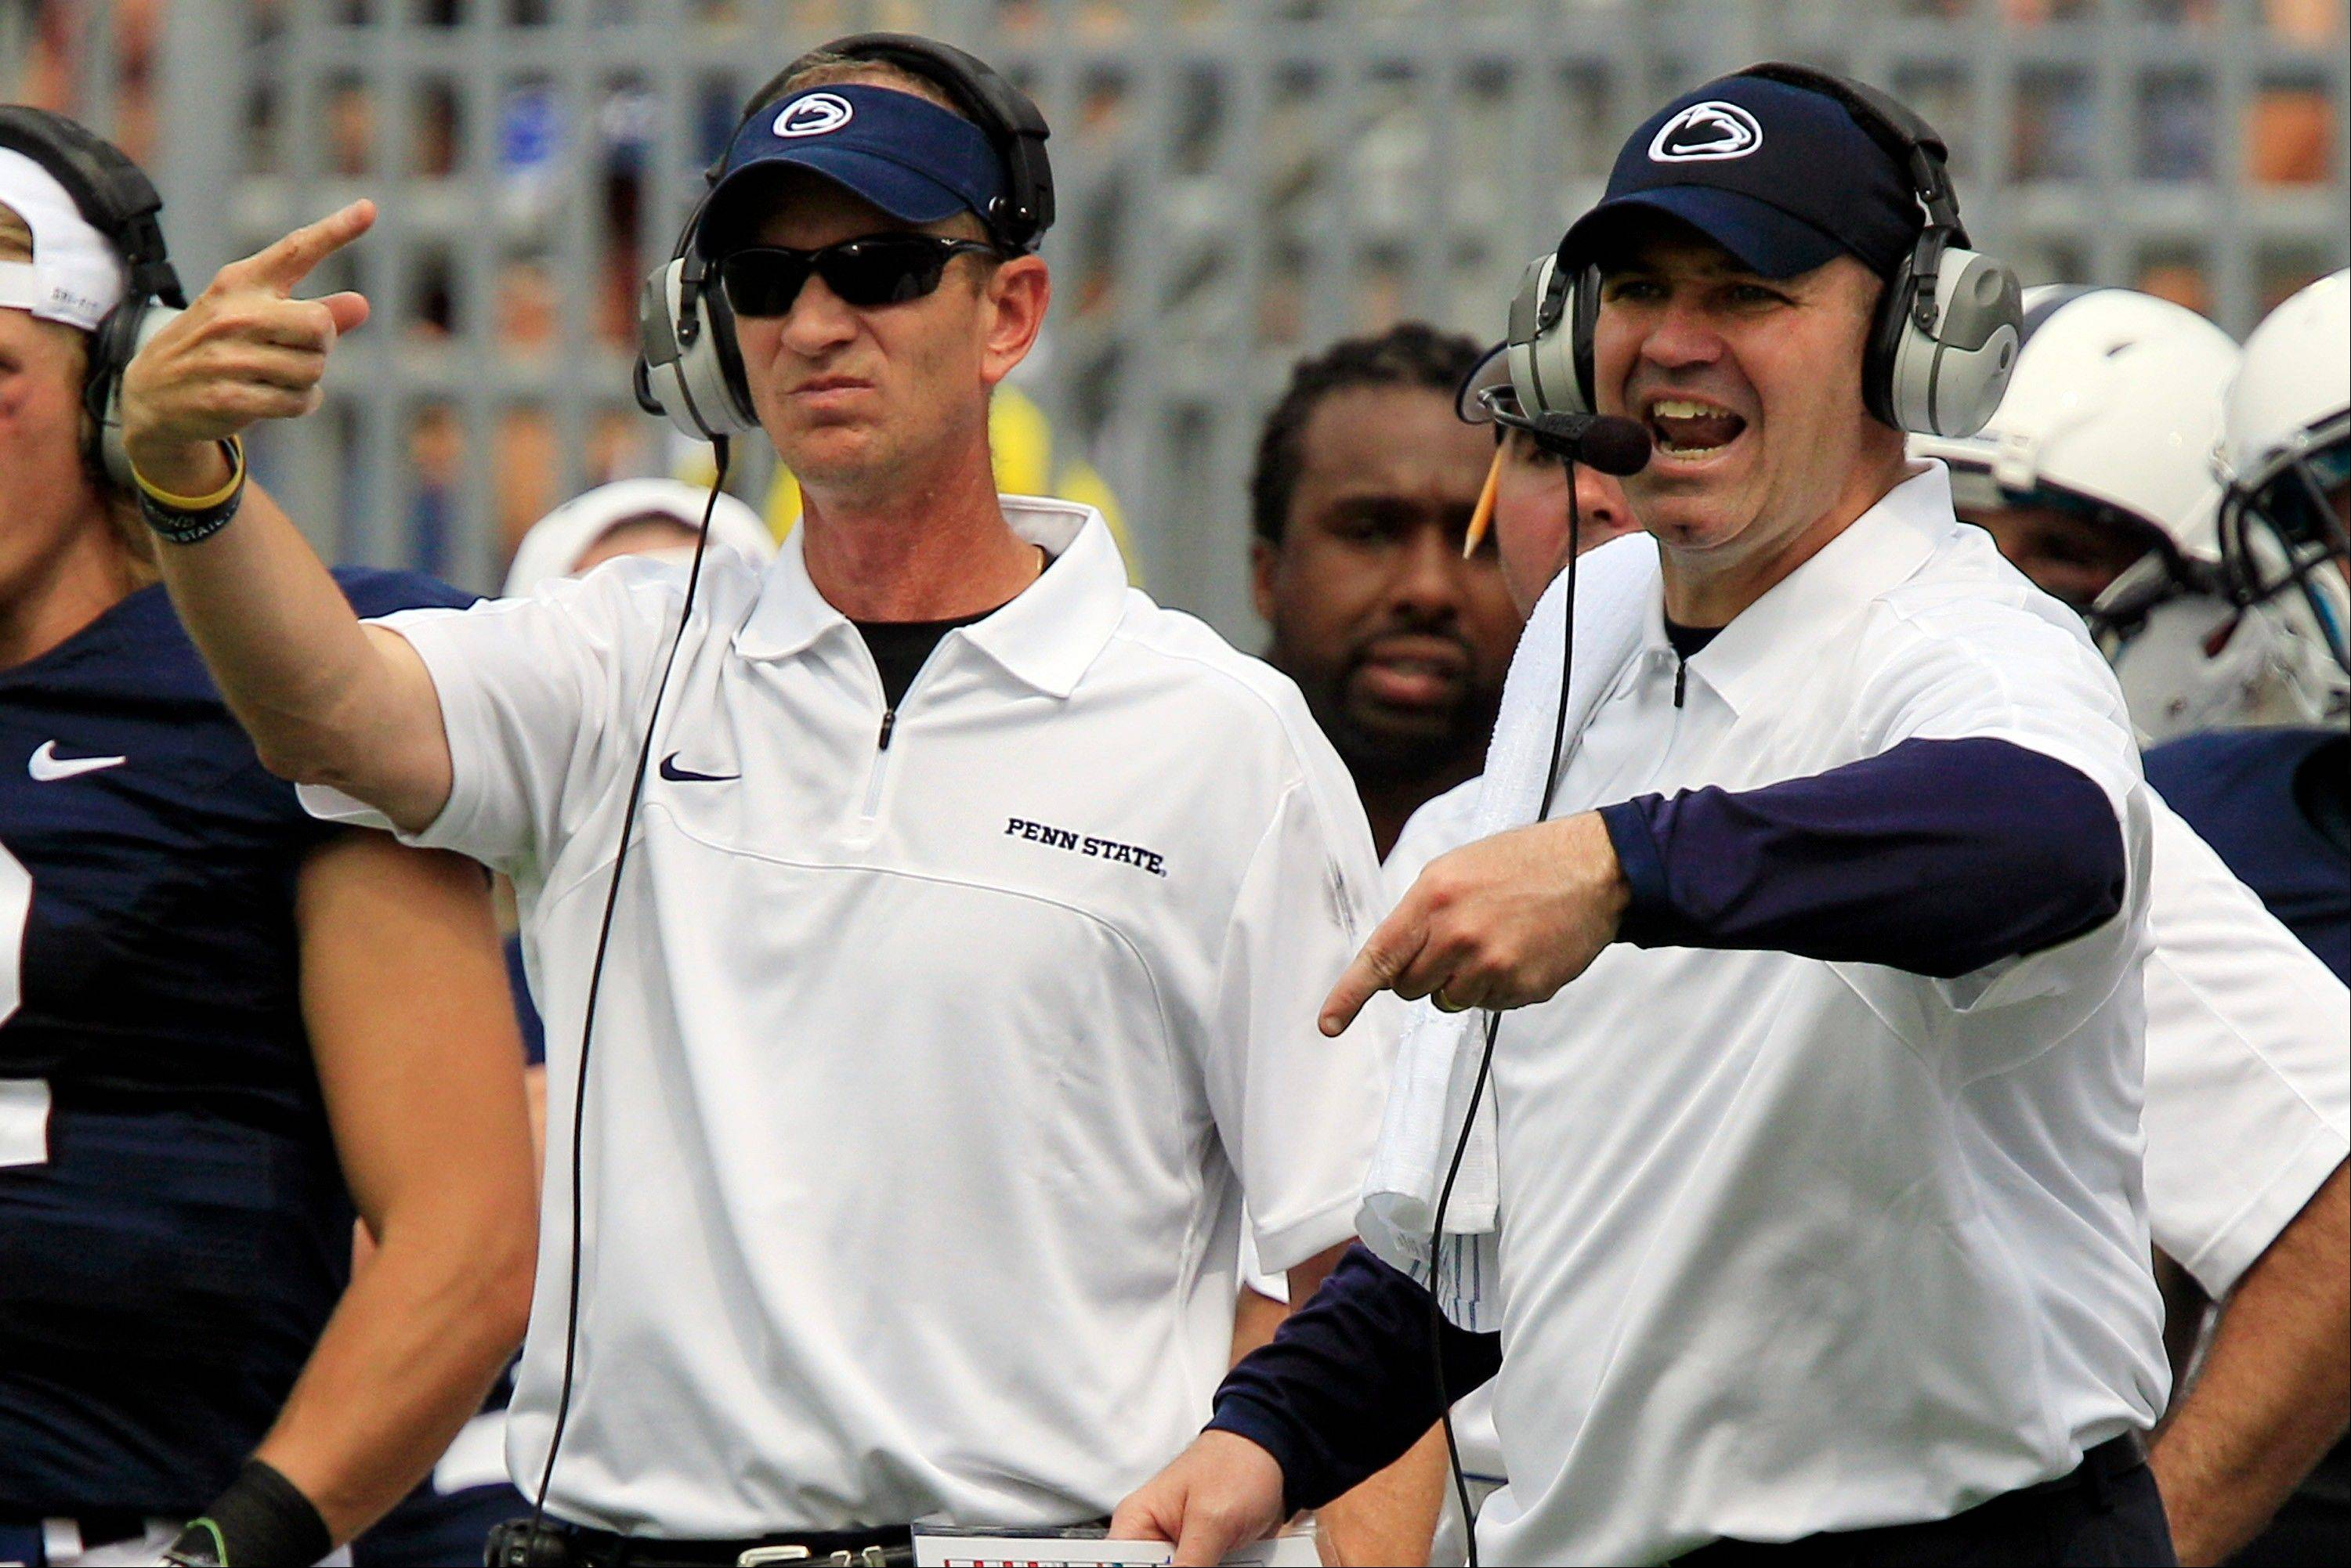 Penn State head coach Bill O'Brien, right, and quarterbacks coach Charlie Fisher, instruct from the sidelines during the first quarter of an NCAA college football game against Ohio at Beaver Stadium in State College, Pa., Saturday, Sept. 1, 2012. Penn State fans ushered in a new era in the football program with a raucous ovation as the team stormed the field for their first game under coach Bill O'Brien.